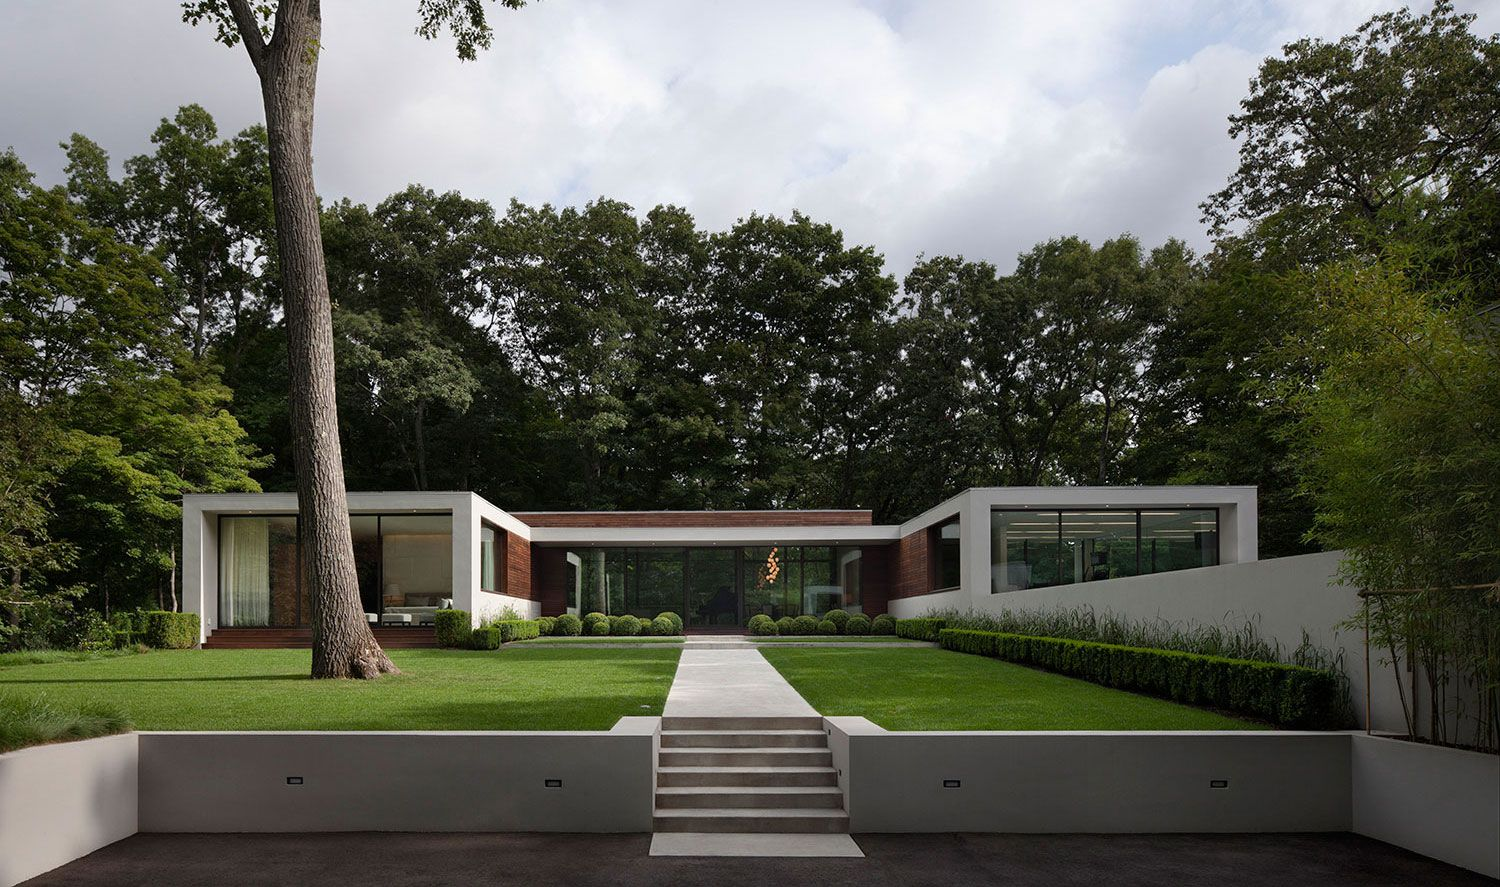 New canaan residence specht architects modern house design modern architecture architecture interiors